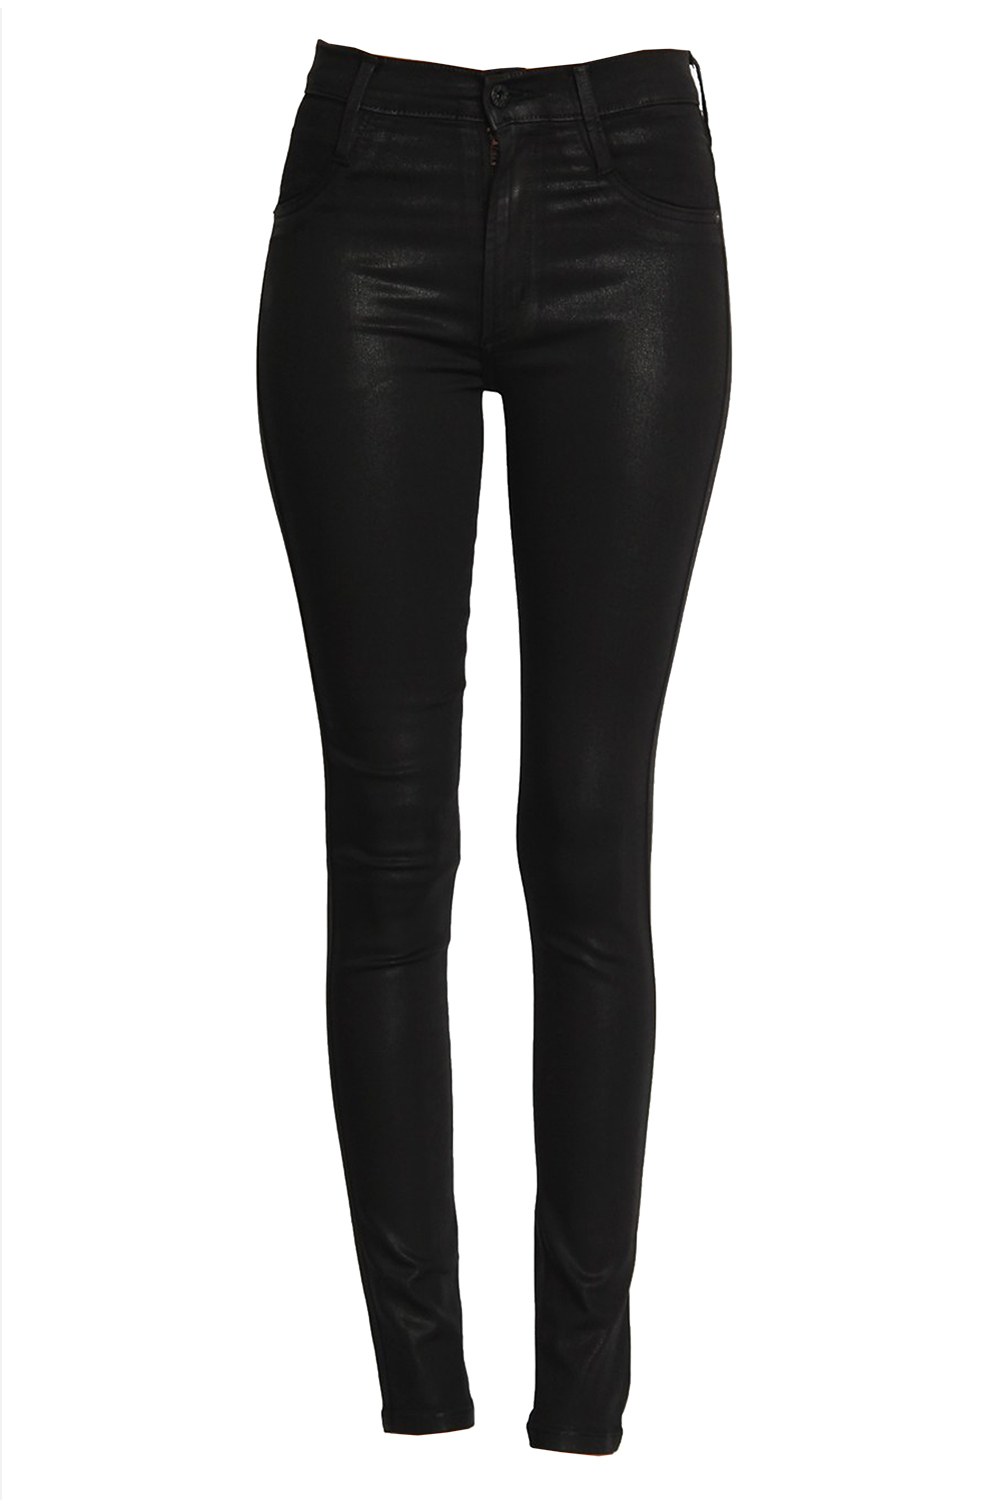 Good Black Skinny Jeans - Jeans Am